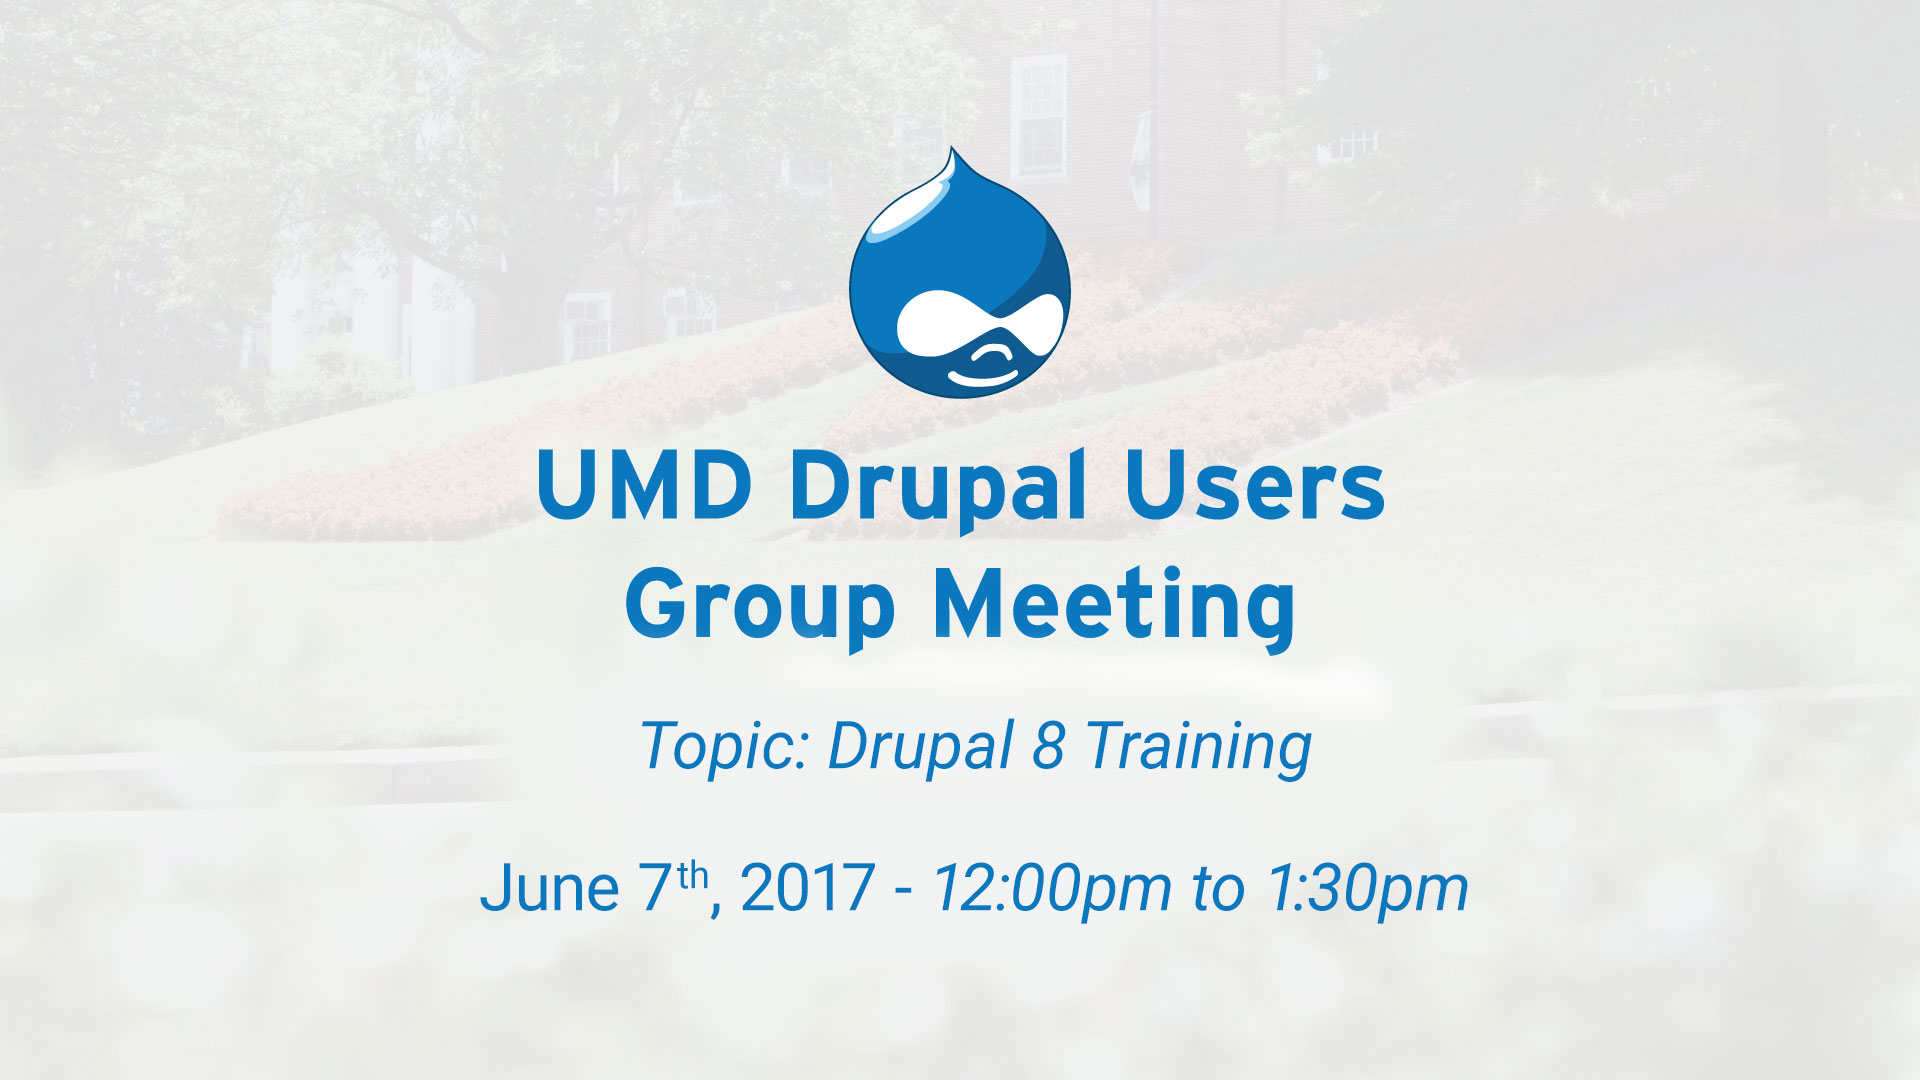 Drupal Users Meeting - Drupal 8 Training